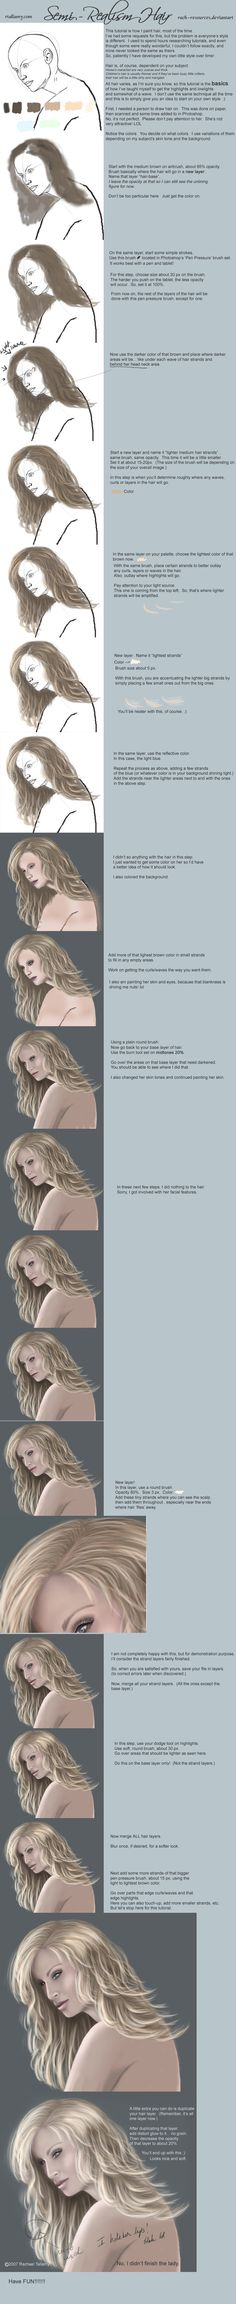 Semi-Realism Hair Tutorial-PS by Rach-Resources